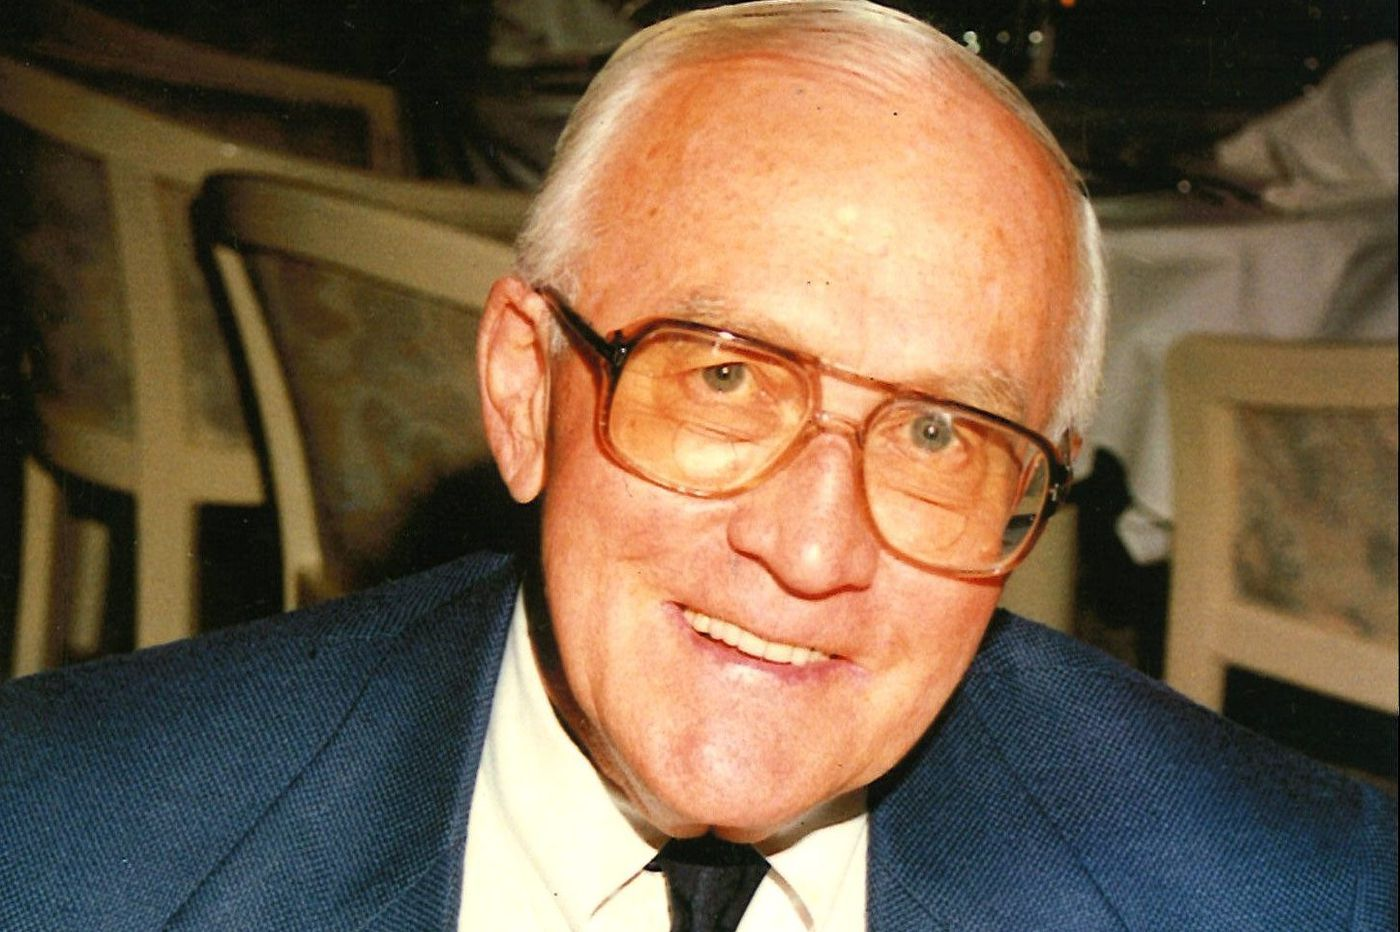 Norbert J. McGettigan, 93, decorated World War II veteran and Philly travel business owner